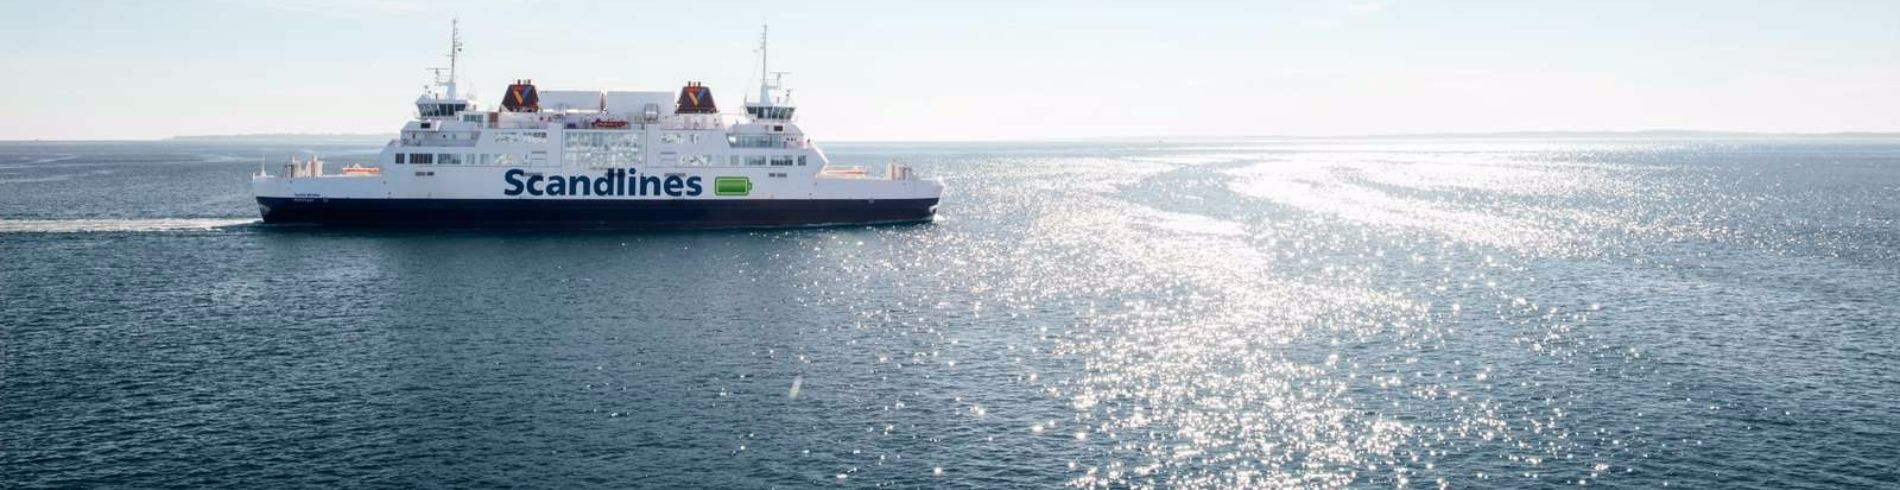 HH FERRIES GROUP MEDIA CENTER cover image